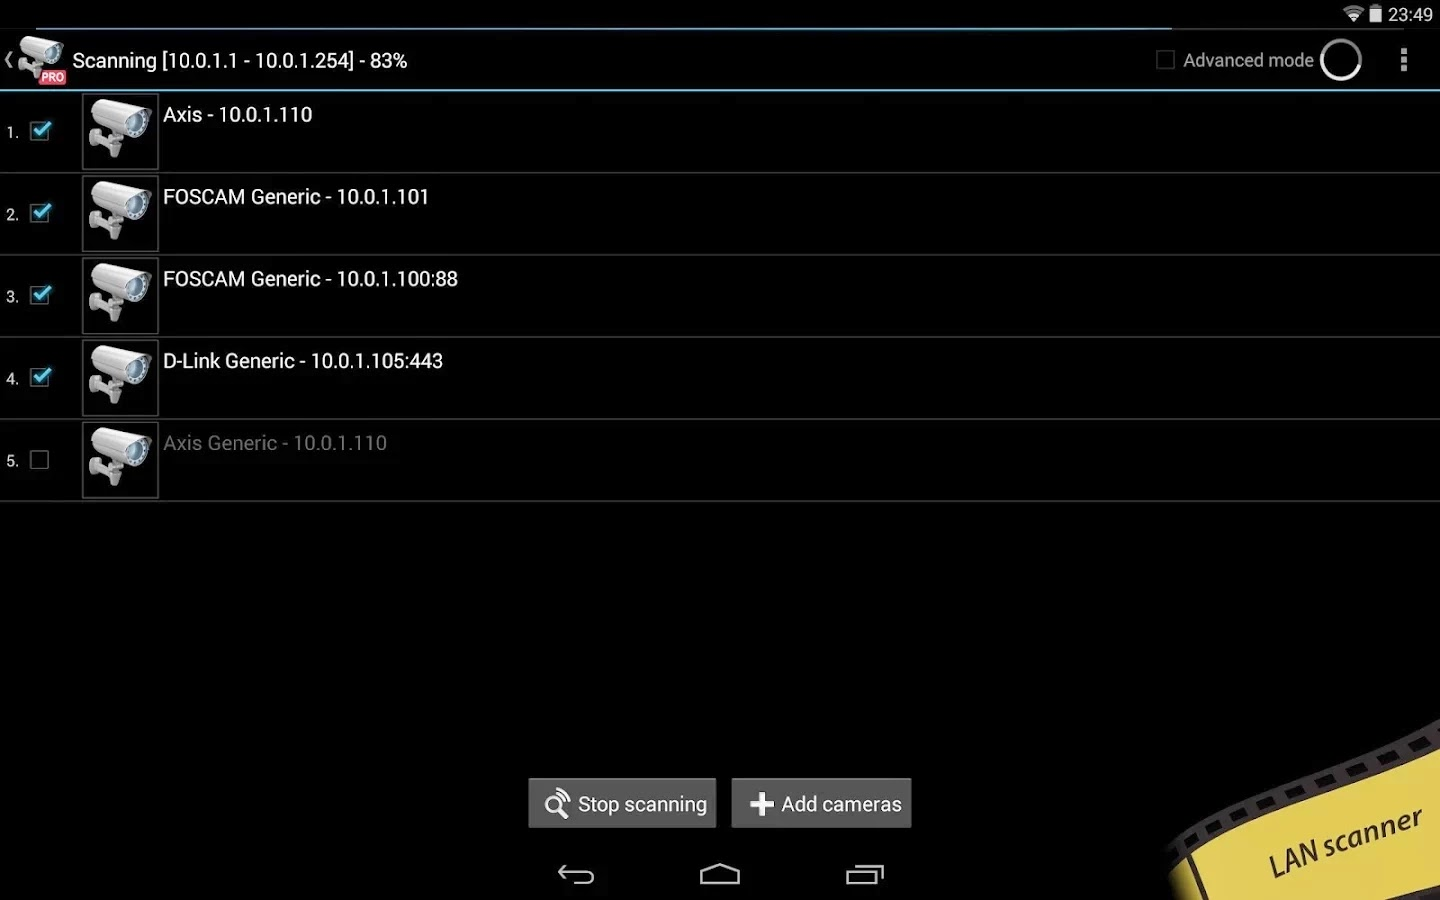 tinyCam Monitor PRO for IP cam v5.3.6